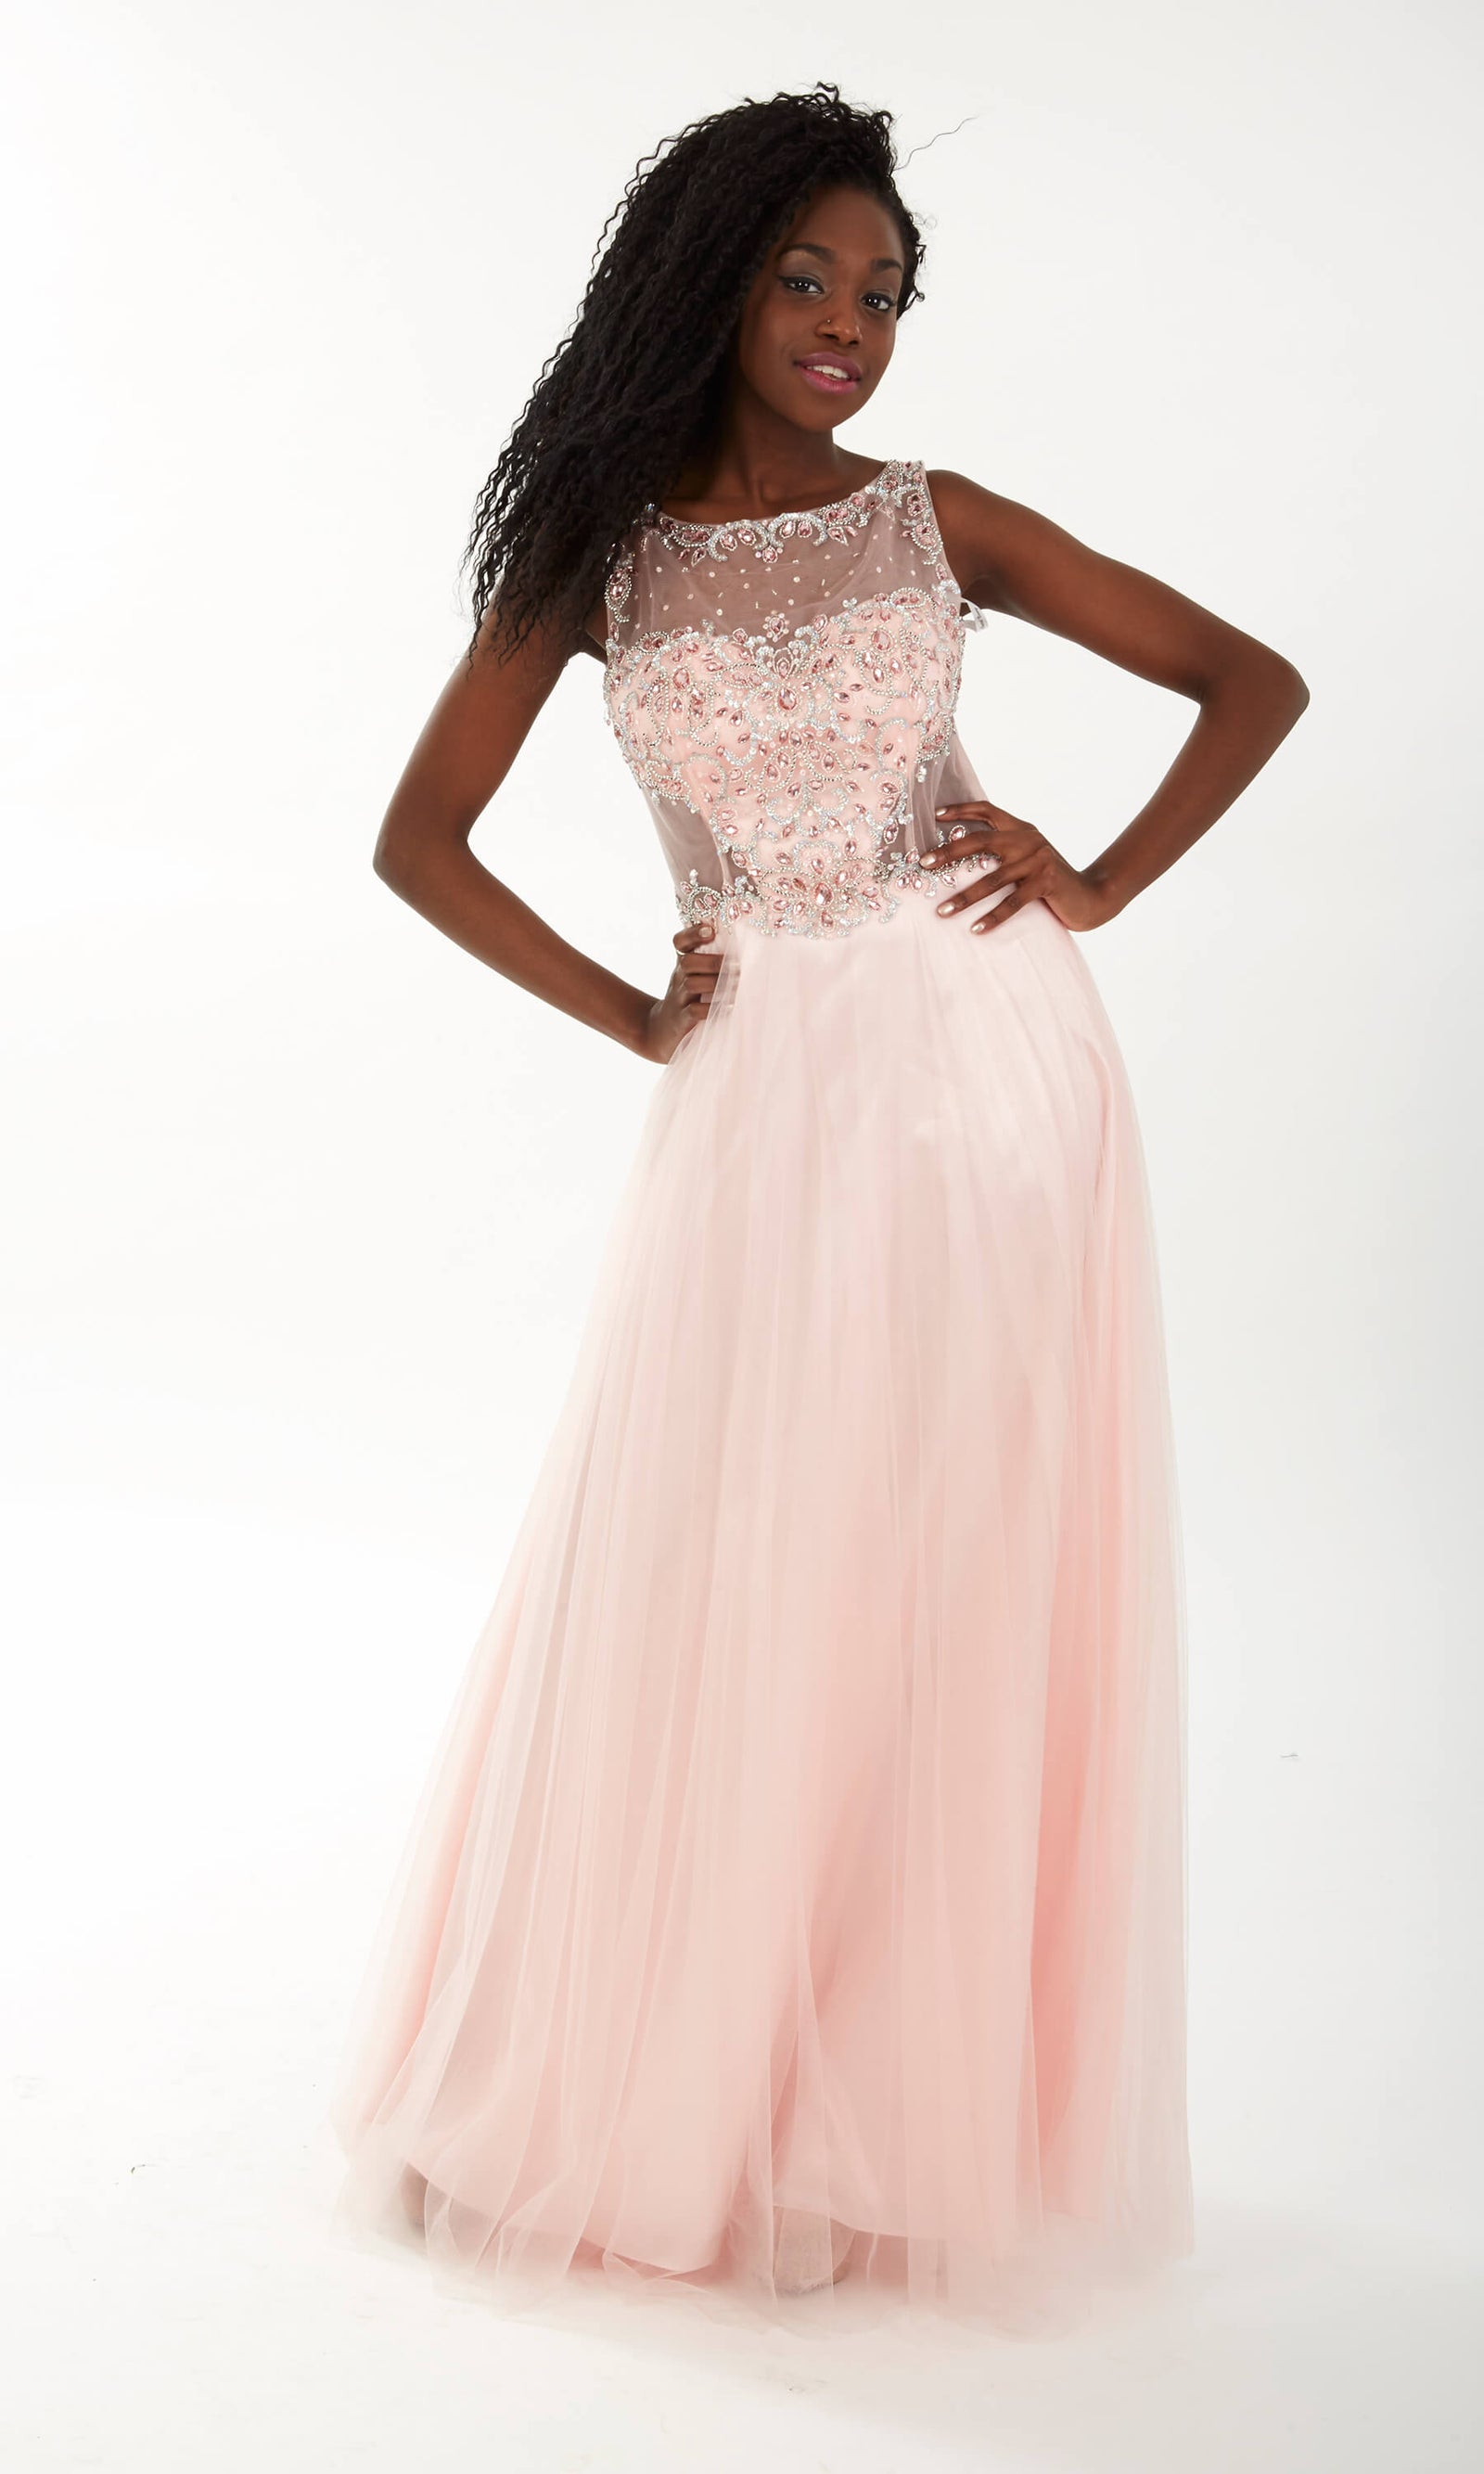 Laura Pink Crystal Breeze Net Ballgown With Sparkle Top - Fab Frocks